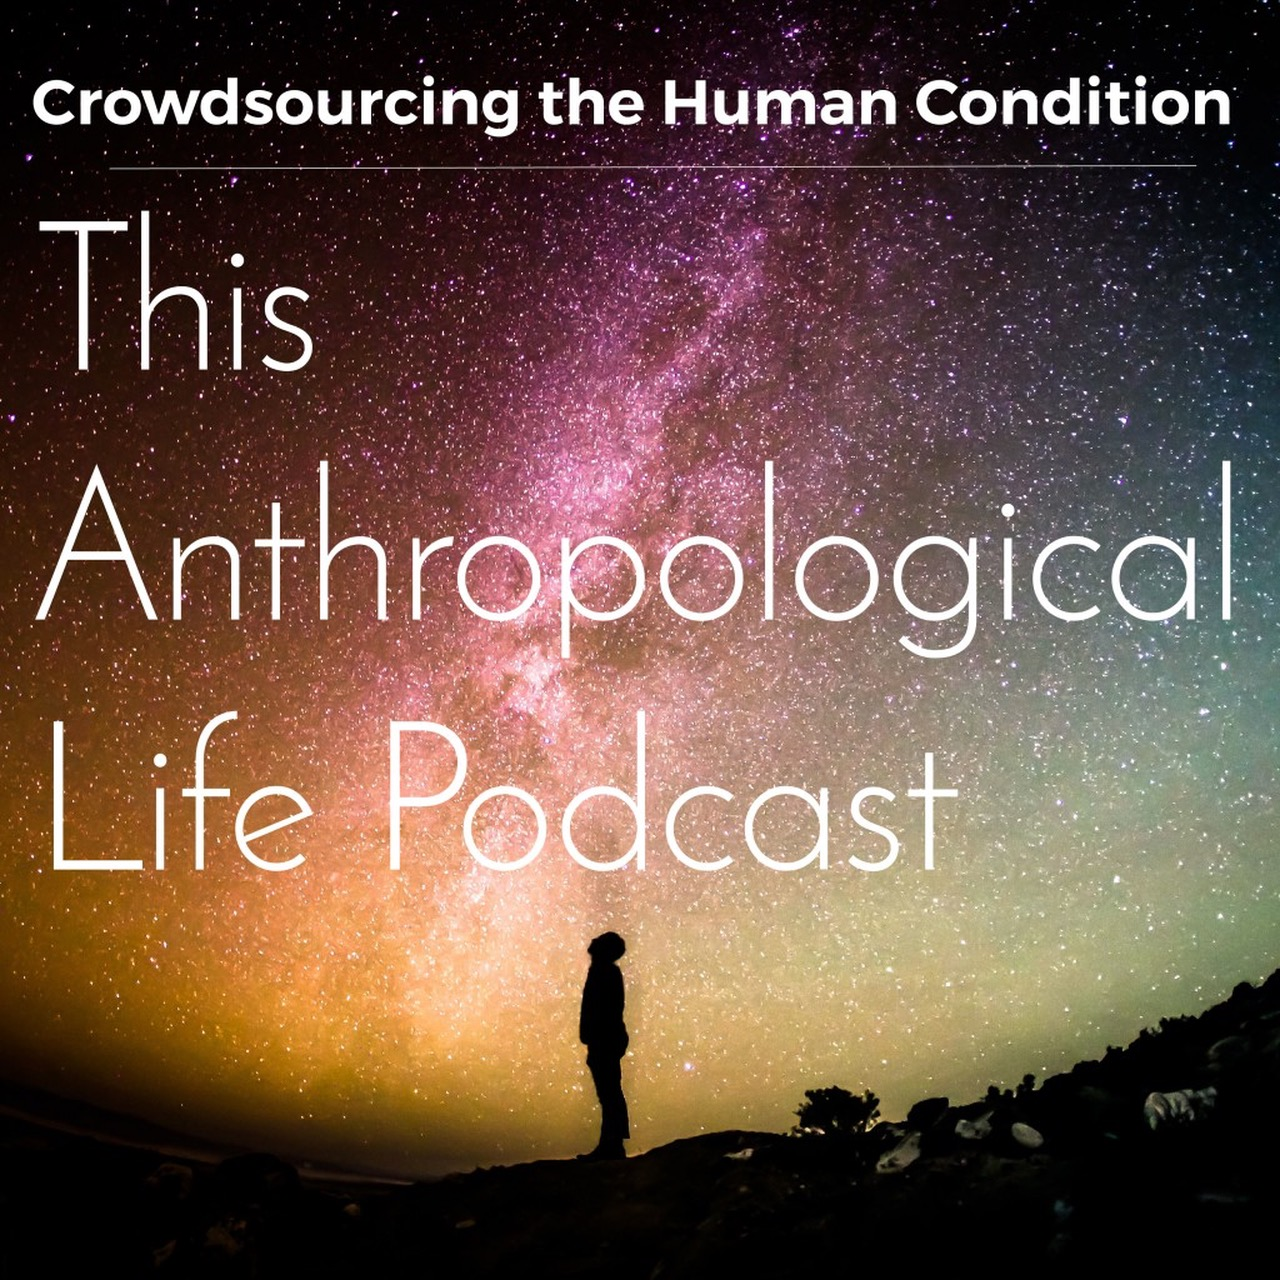 This anthropological life logo